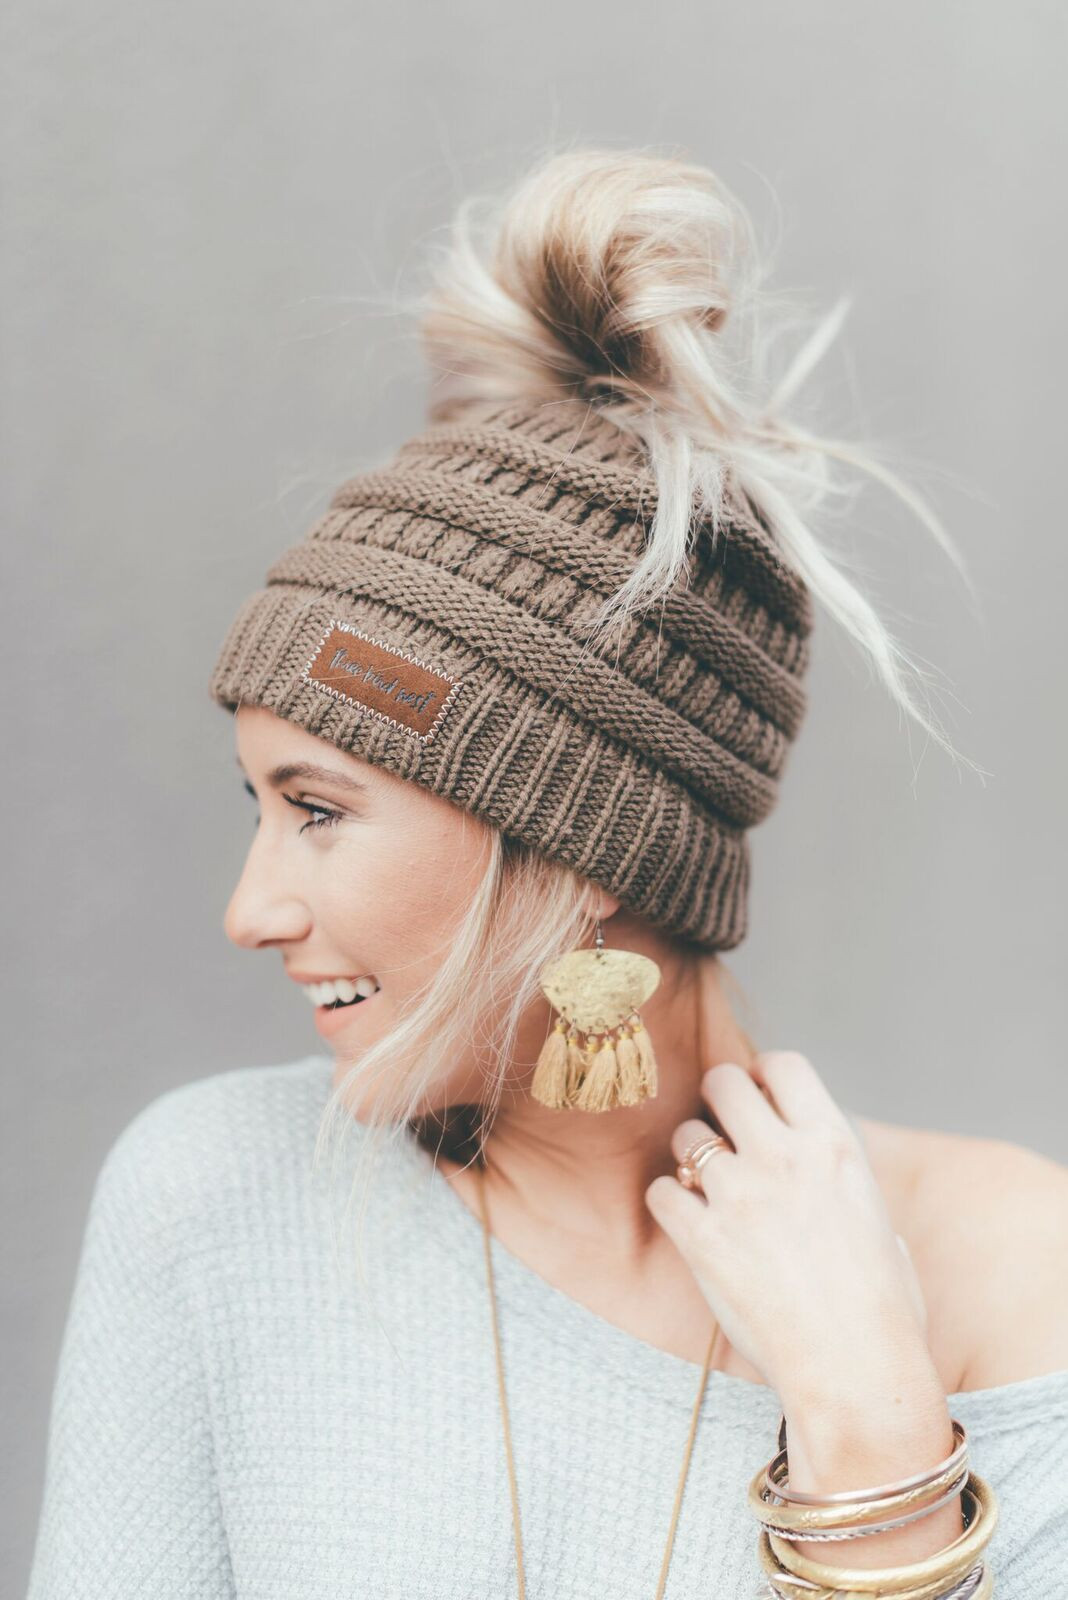 Messy Bun Beanie Hat Fresh Messy Bun Beanie Ponytail Hat Mocha Of Brilliant 47 Photos Messy Bun Beanie Hat